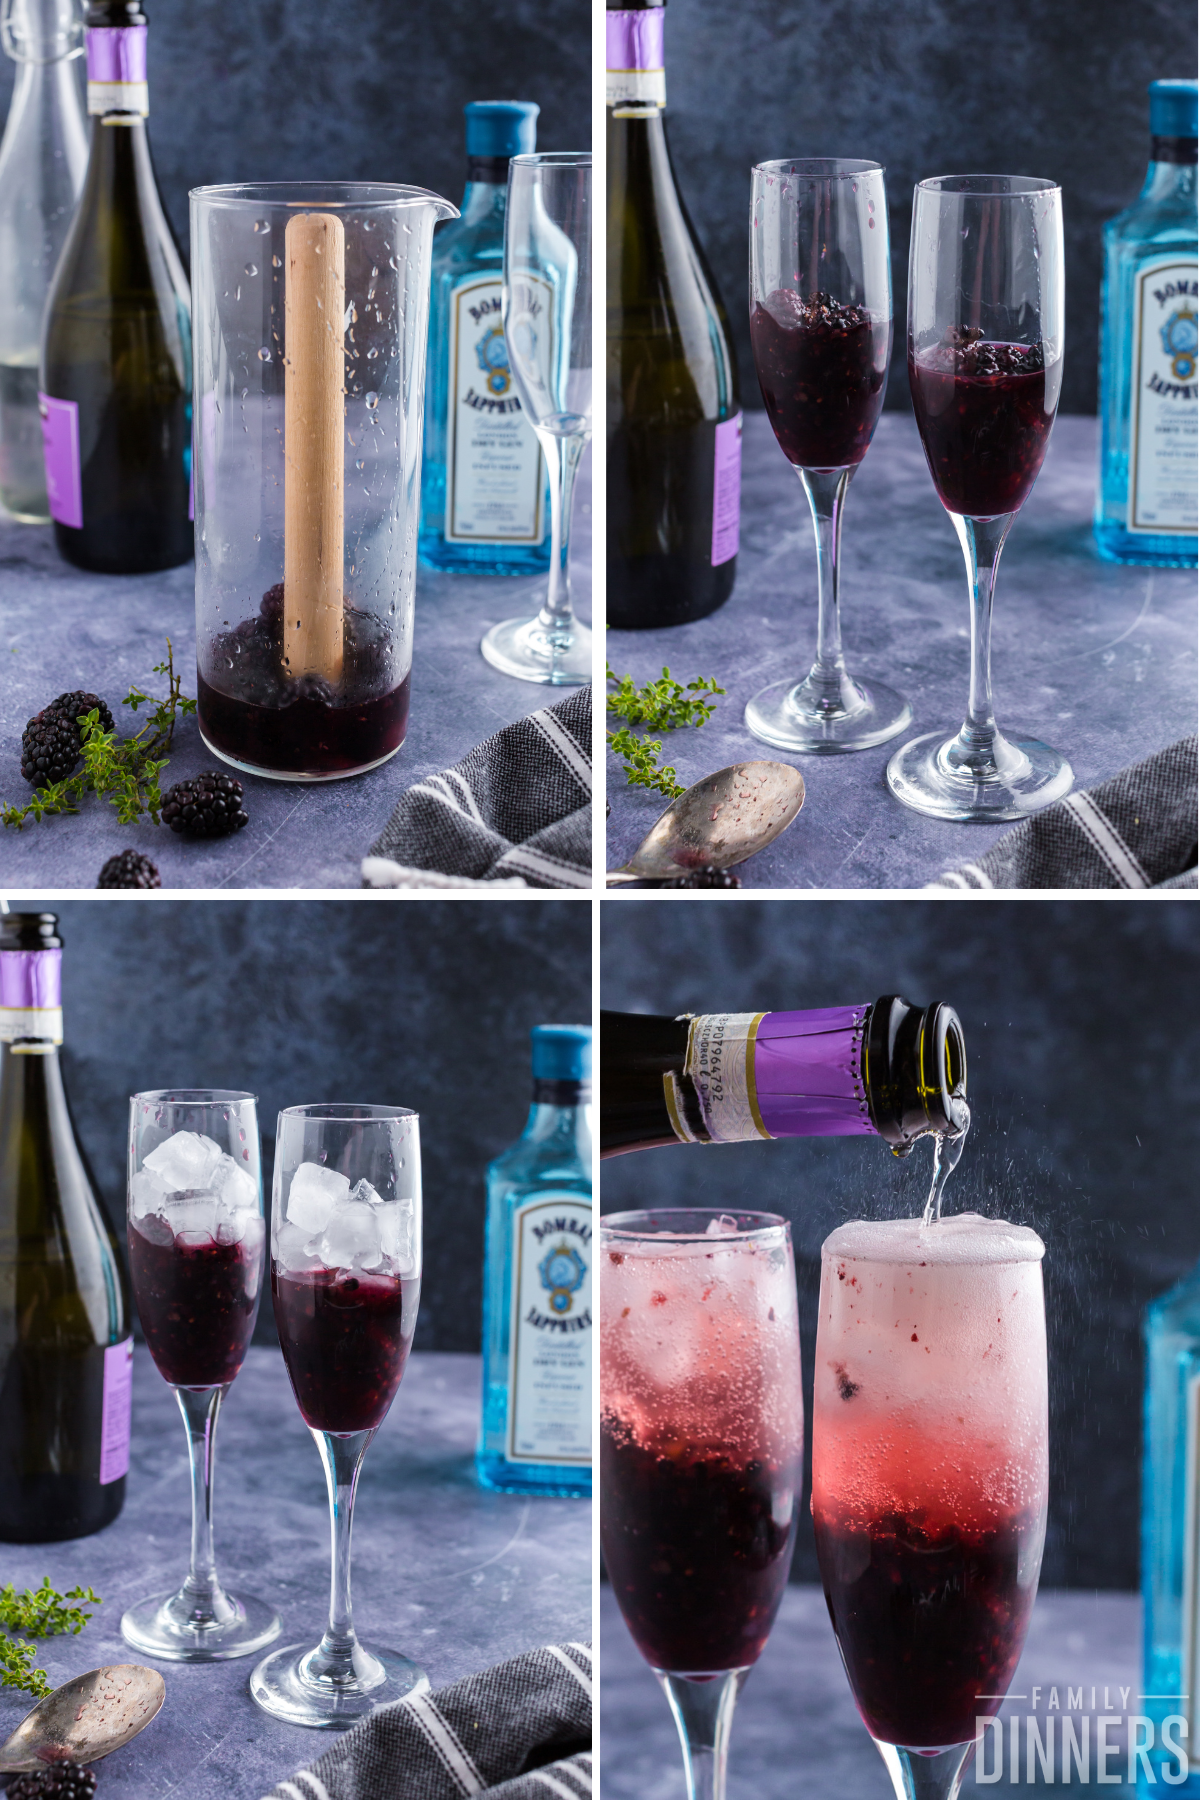 4 photos. Top left shows blackberries being mulled in a glass carafe. Top right shows two champagne glasses full of mulled blackberries. Bottom left shows glasses with berries in the bottom with ice cubes on top. Bottom right shows champagne poured into the glass bubbling and fizzing on top.